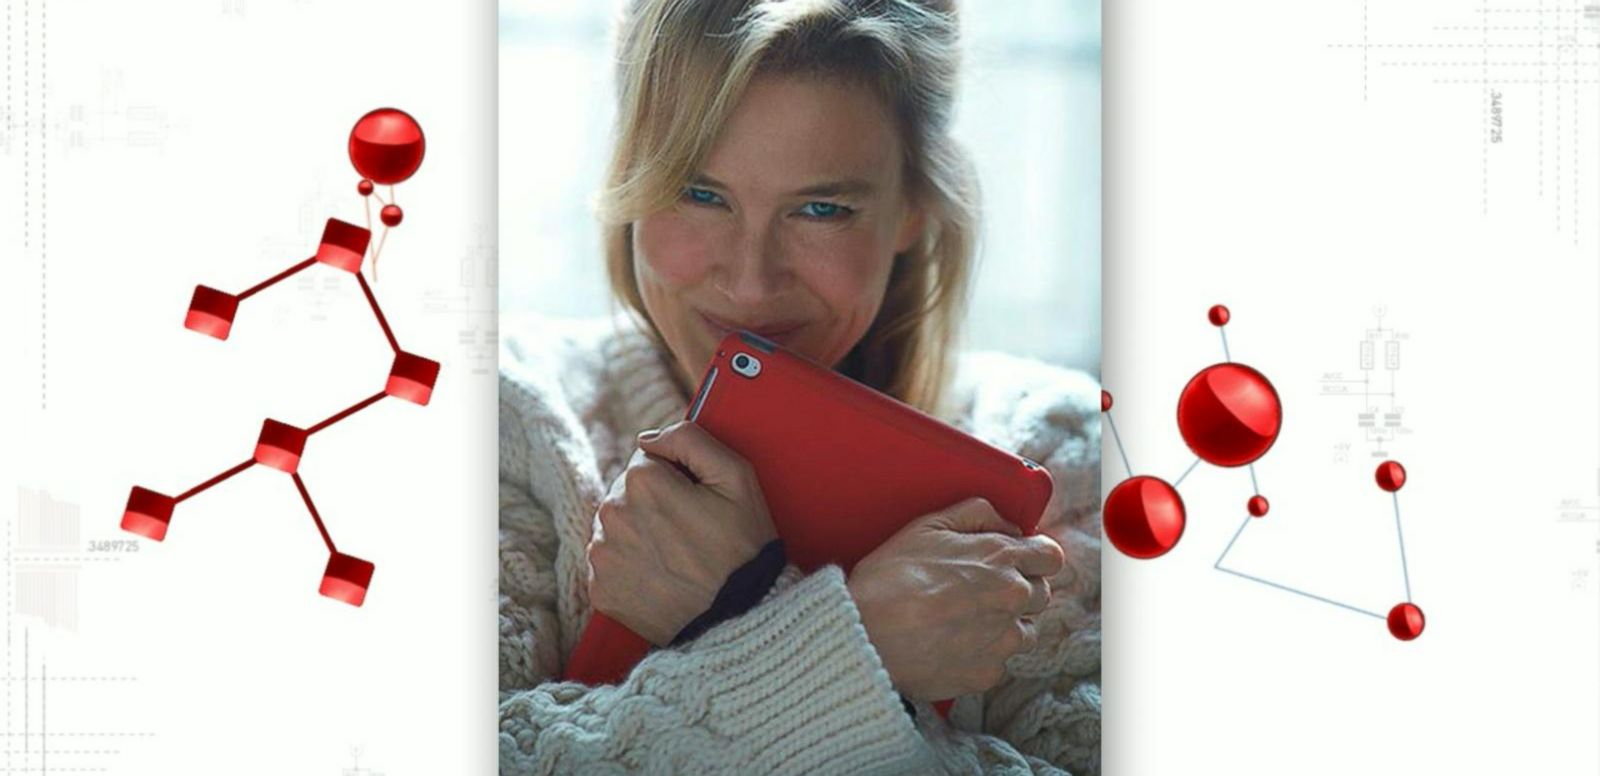 VIDEO: Bridget Jones Updates Diary With Her Apple iPad